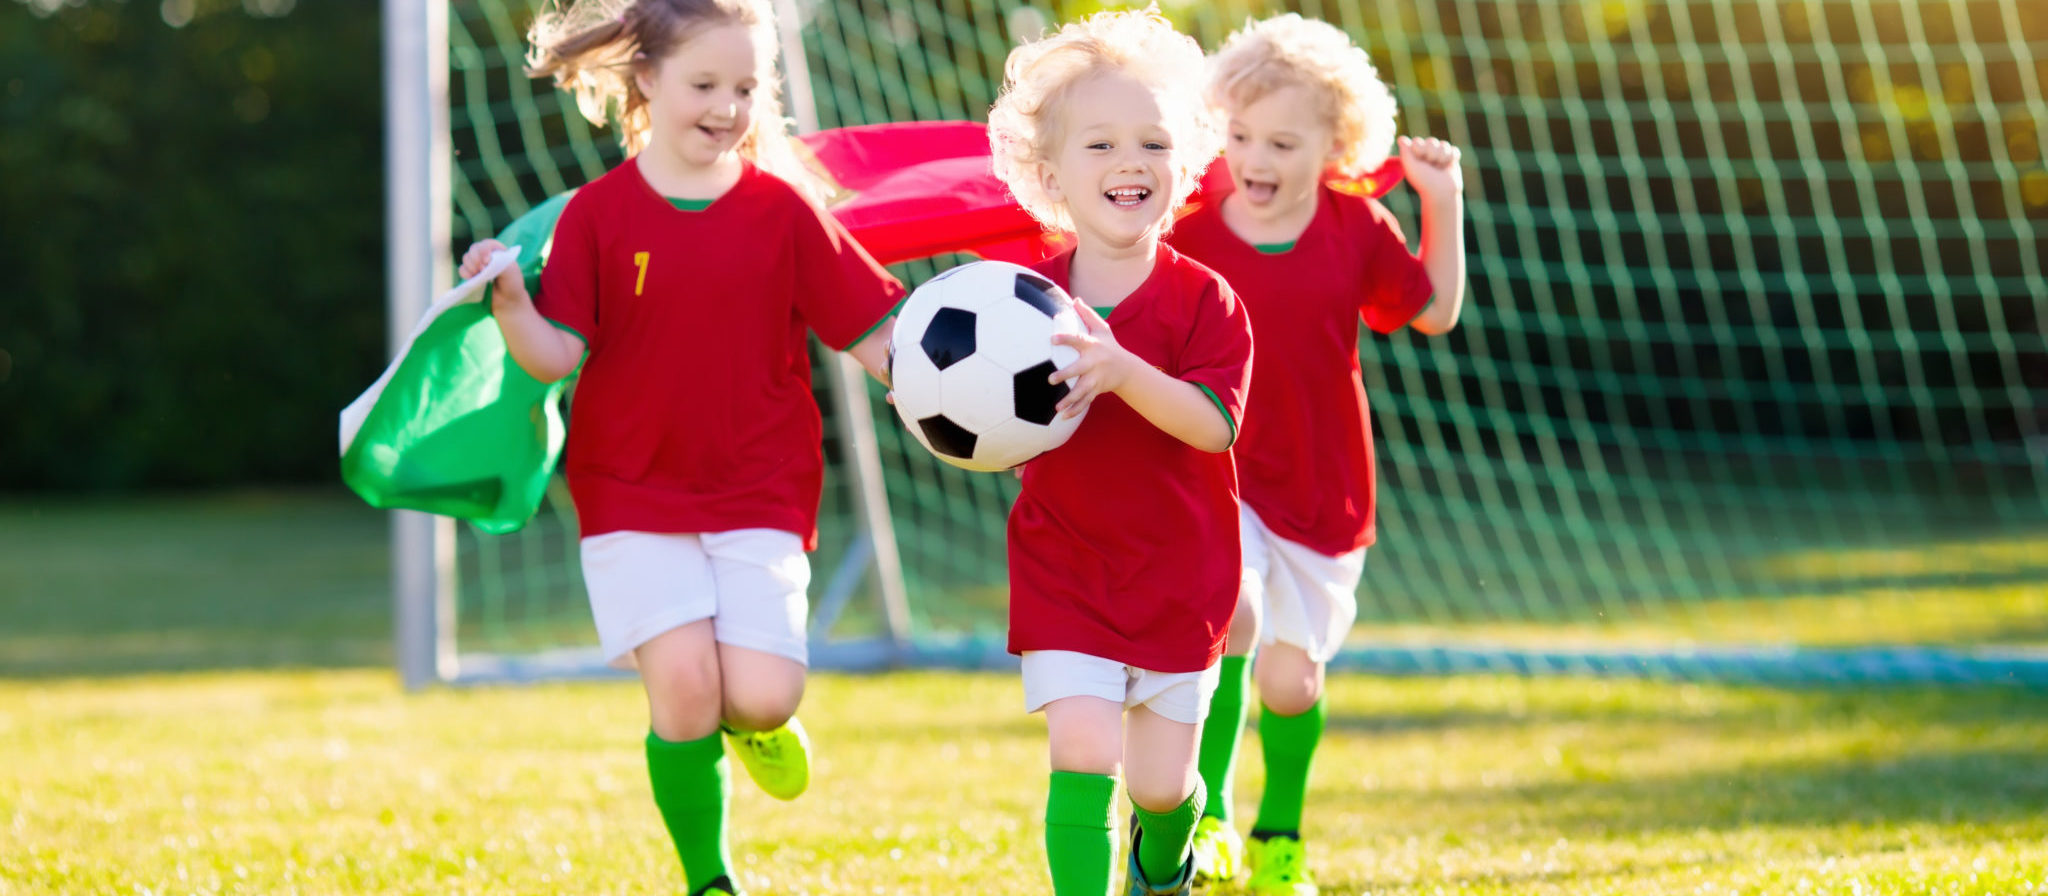 Early physical activity, specifically team-oriented sports, are a great way to enhance motor skills.